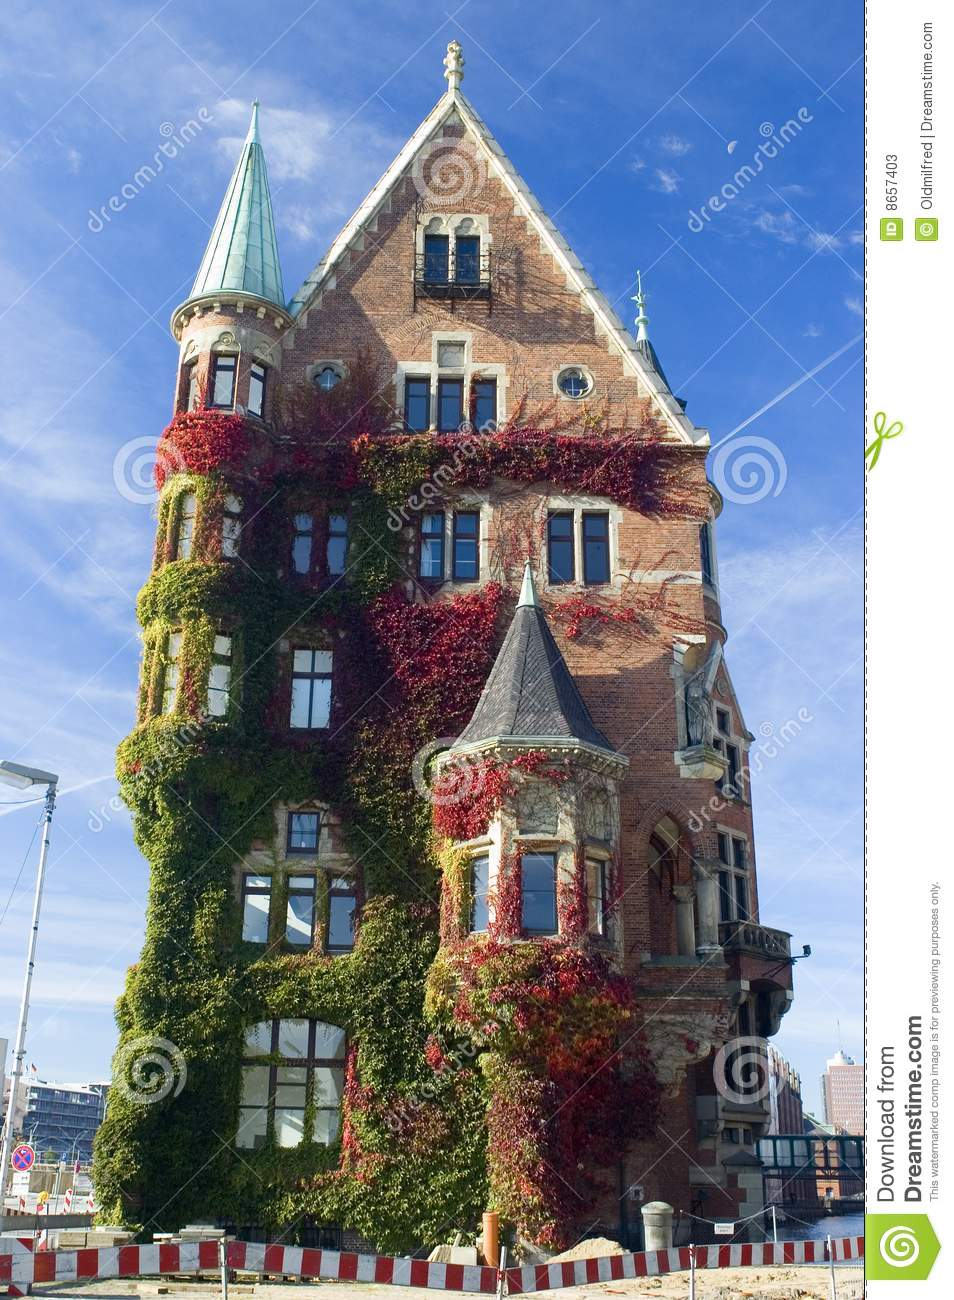 Haus Verkaufen Deutschland Hamburg Historic House In Fall Stock Image Image Of Blue House